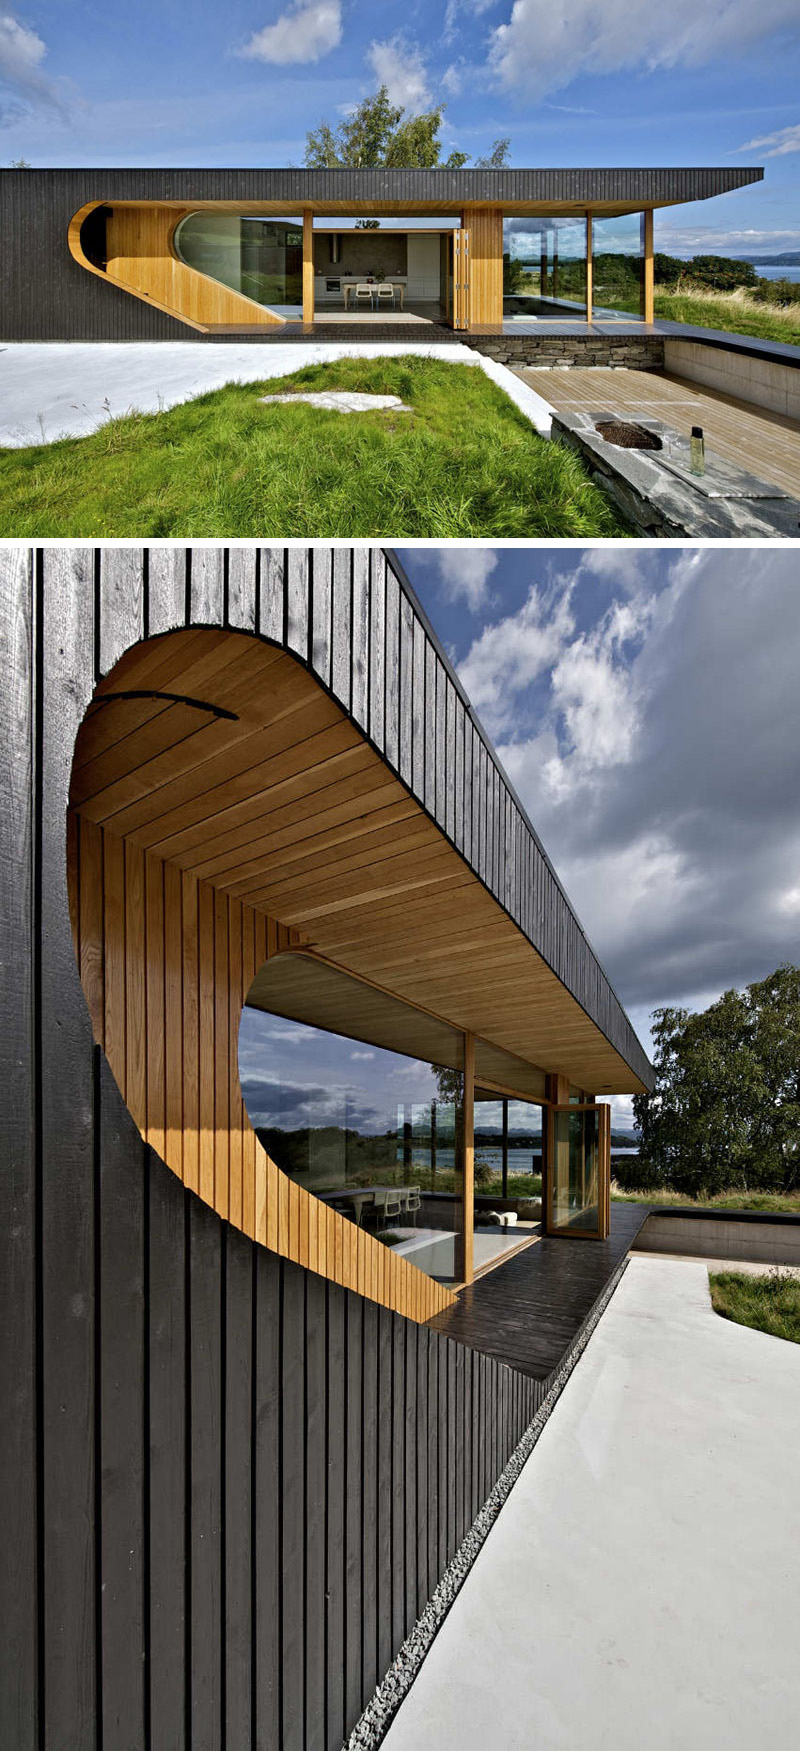 The curved window of this modern cabin follows the shape of the exterior, and reveals the interior of this black wood cabin.